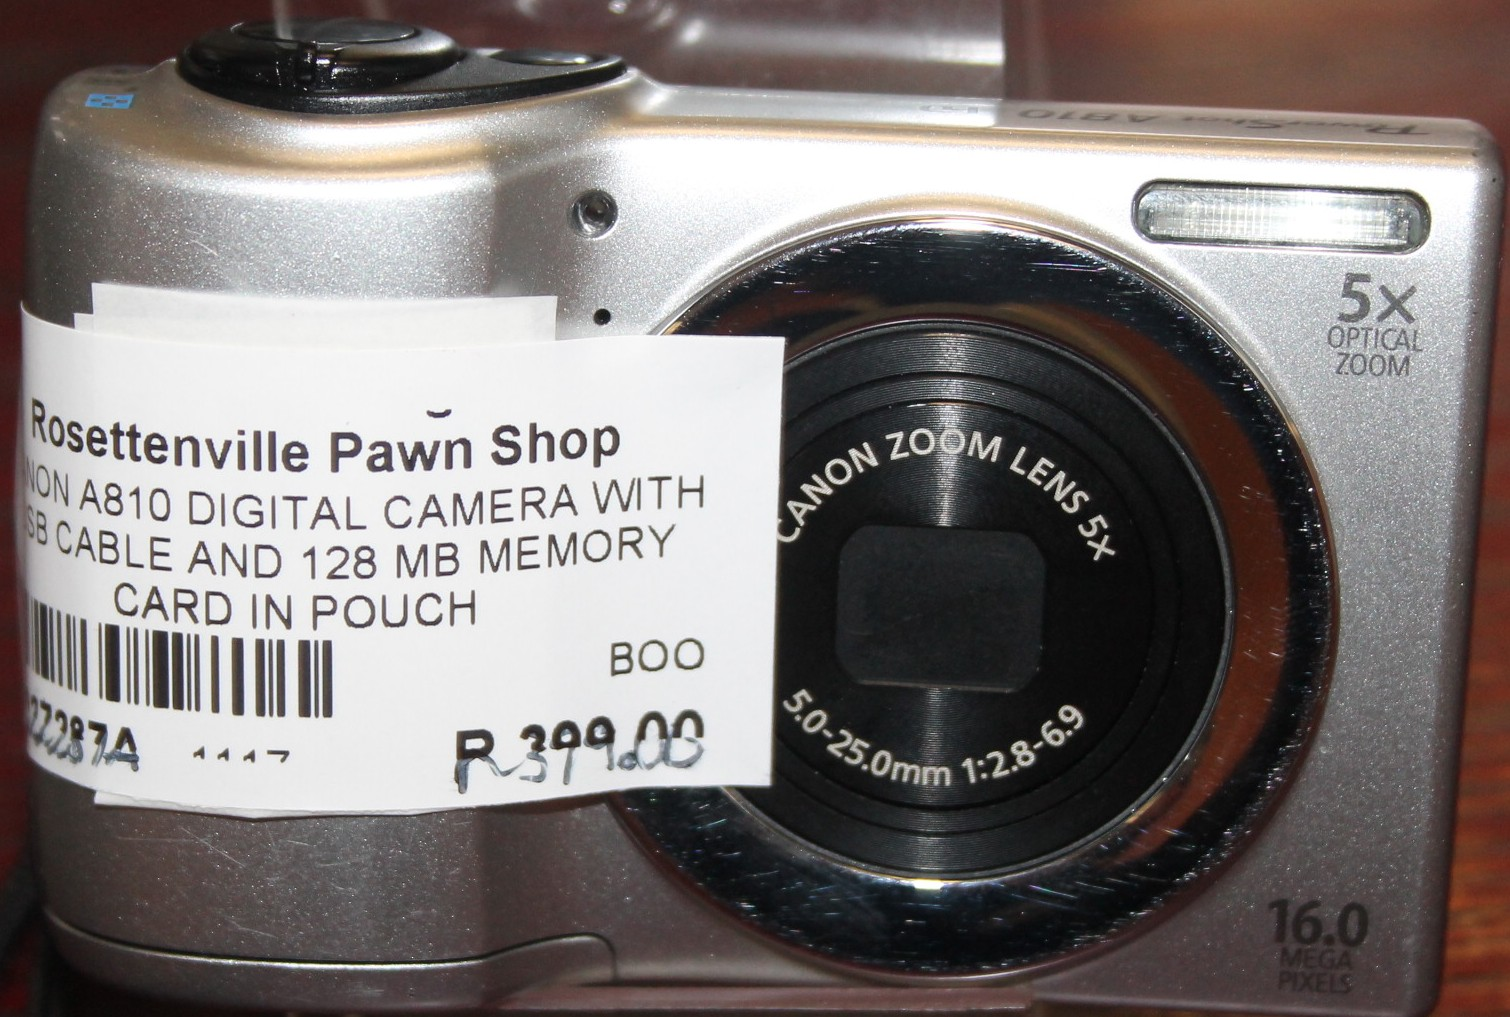 Canon digital camera S027287a  #Rosettenvillepawnshop